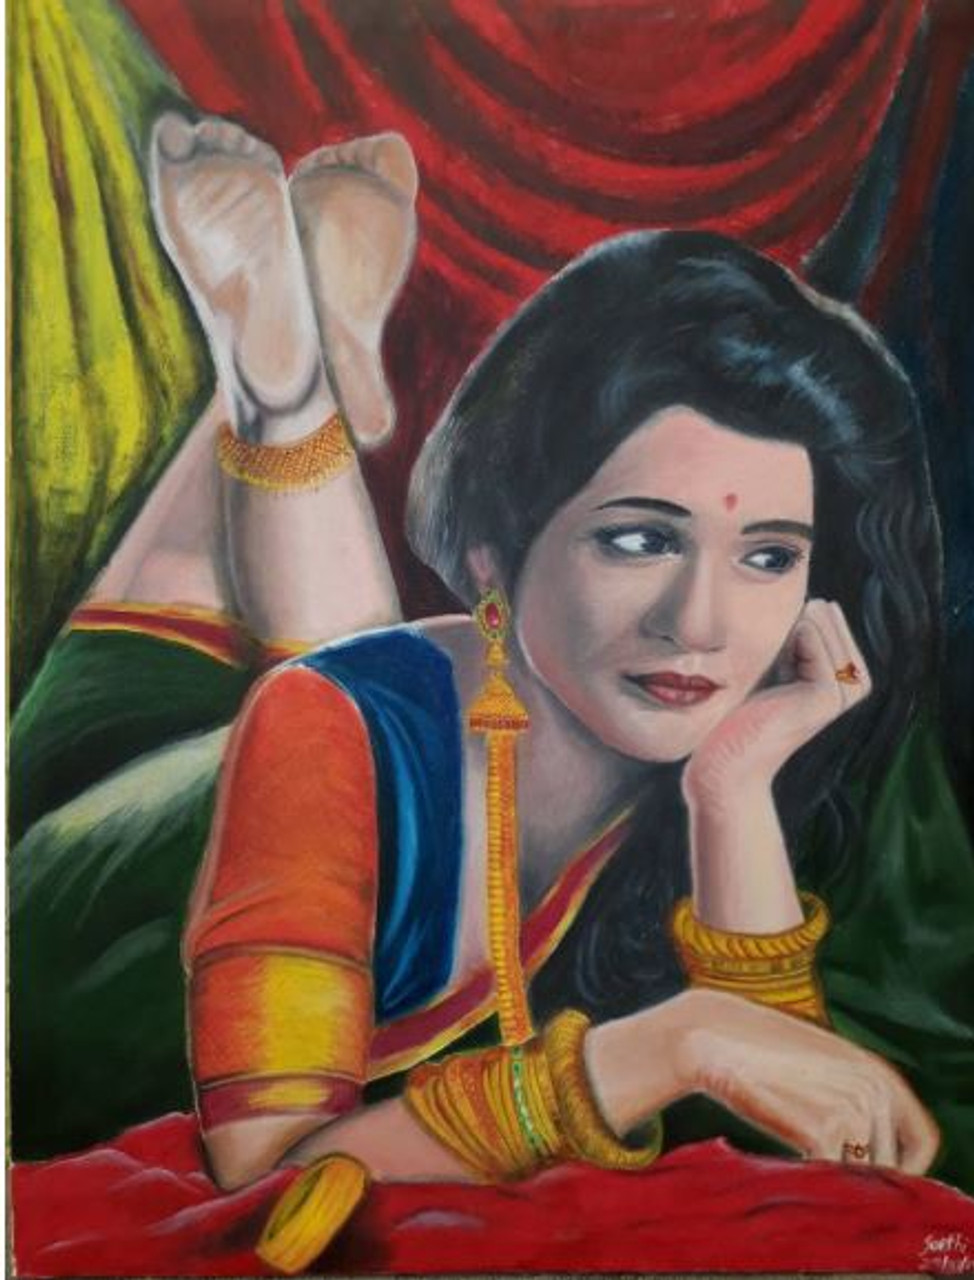 An Indian Woman Thinking Of Laying Down Art 6071 35069 Handpainted Art Painting 21in X 26in